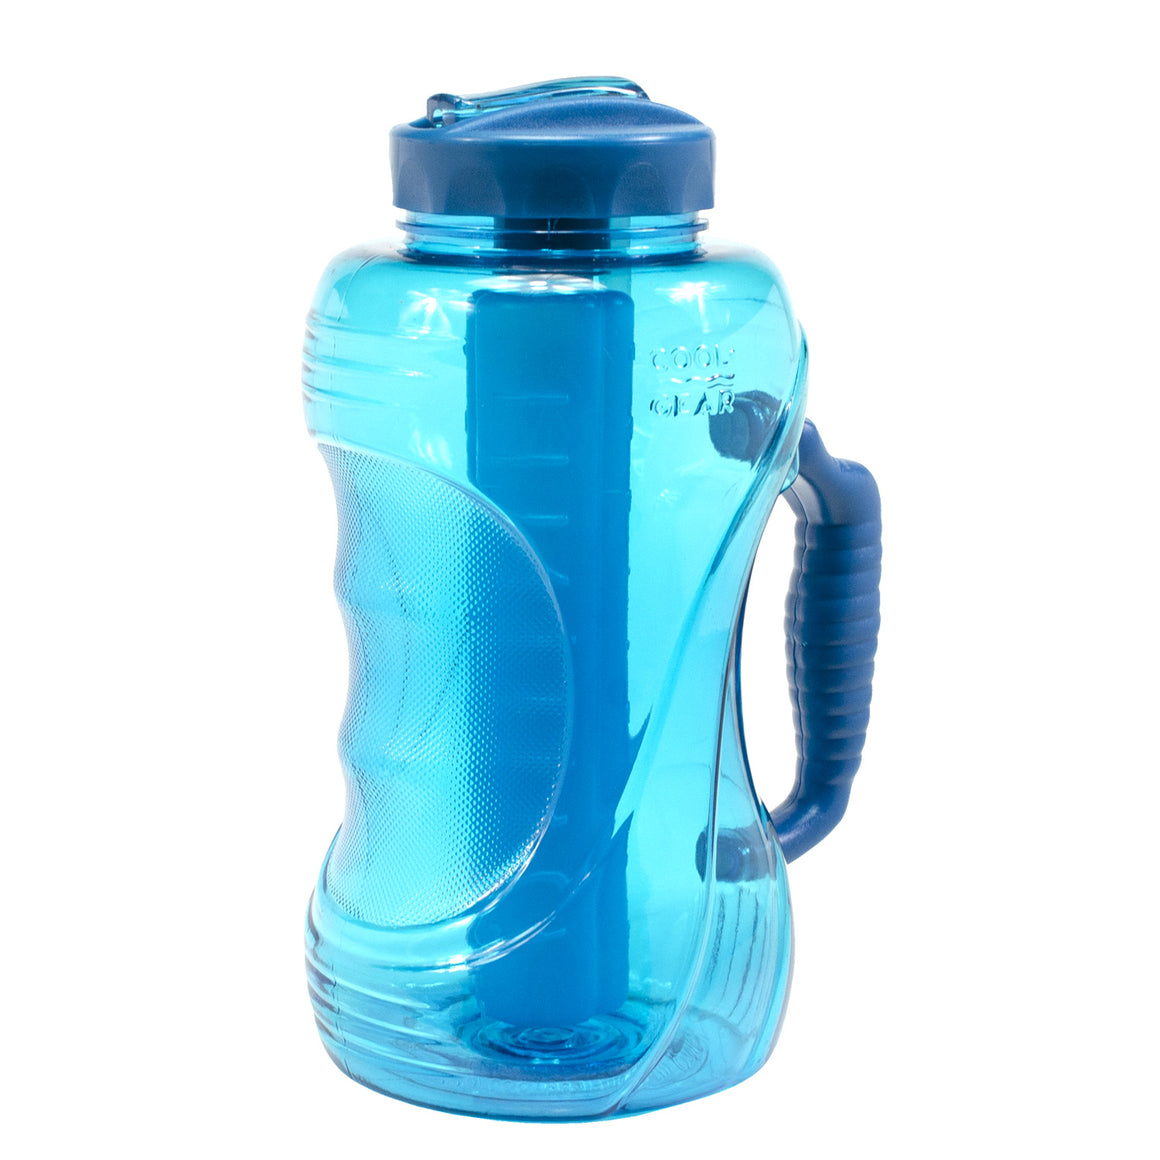 Green Infusion 56 Oz Water Bottle at Cool Gear Water Bottles,Large Volume